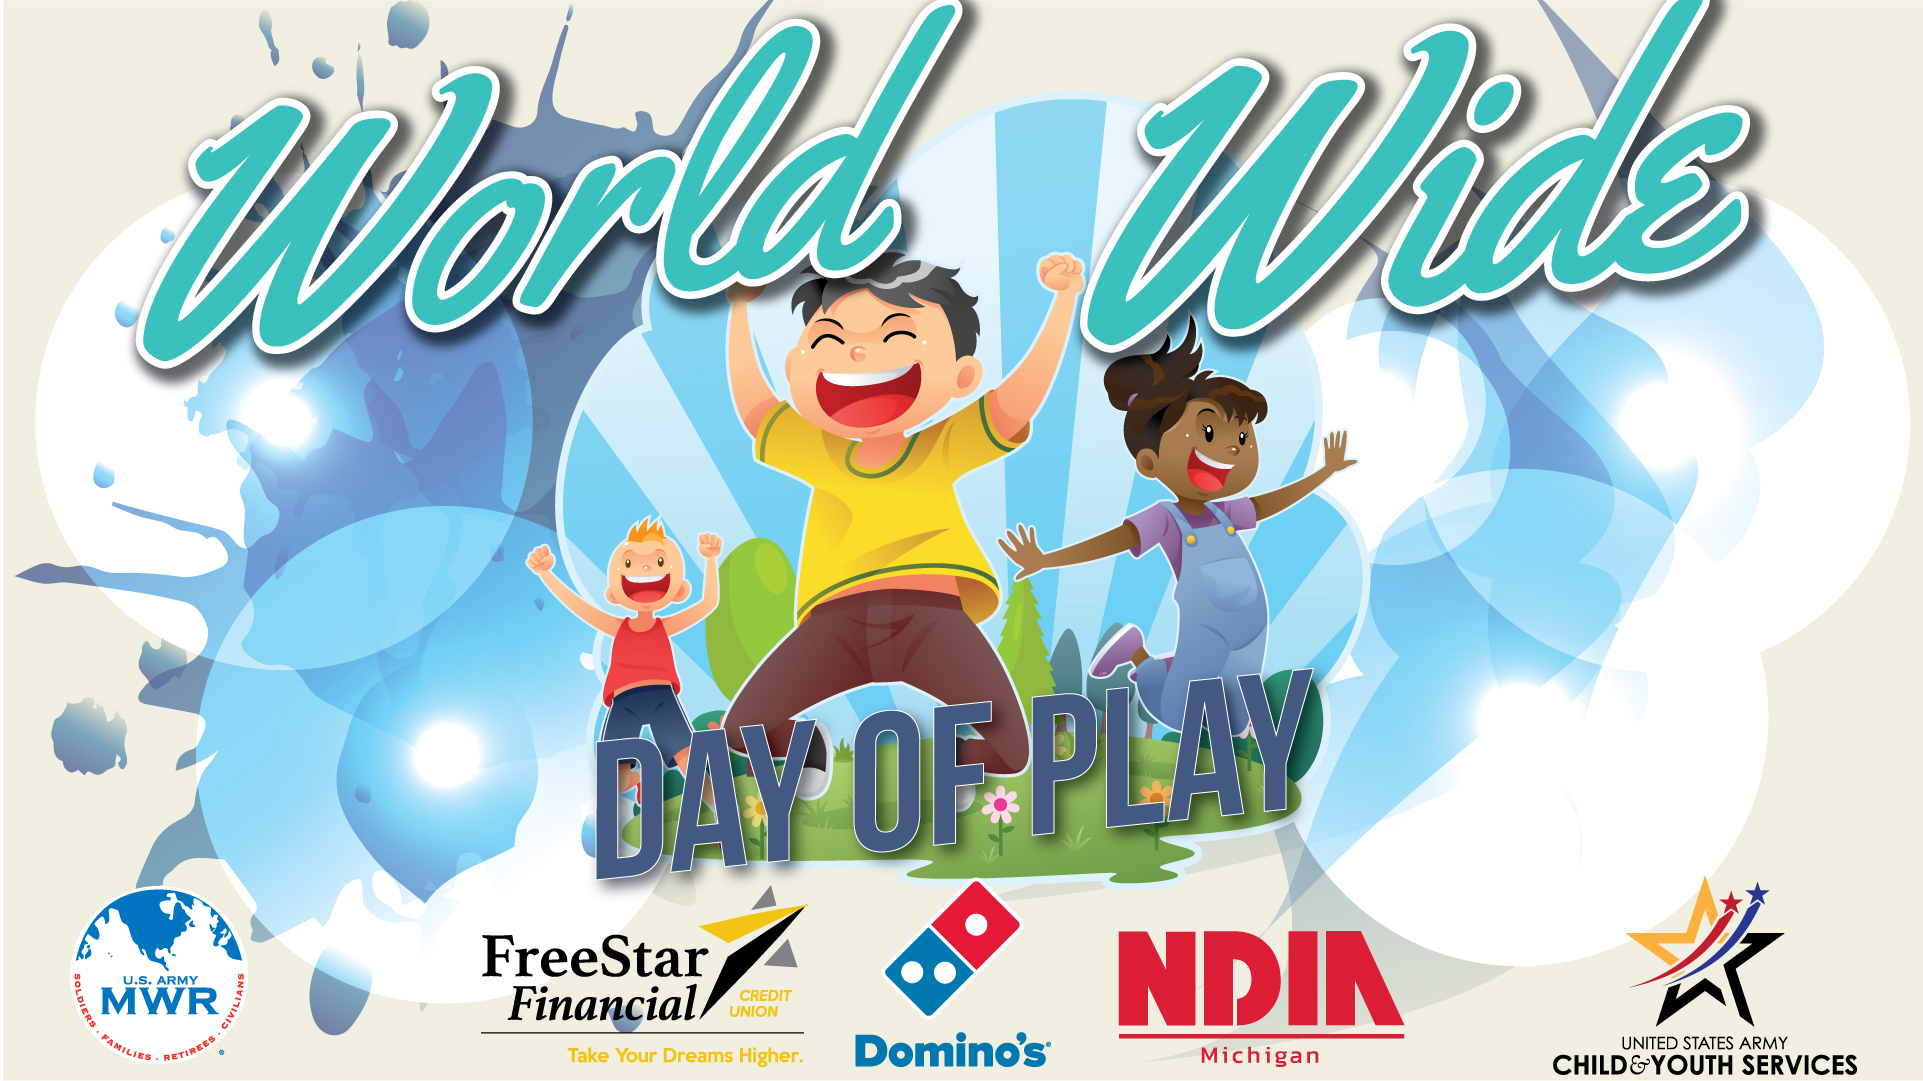 CYS Worldwide Day of Play